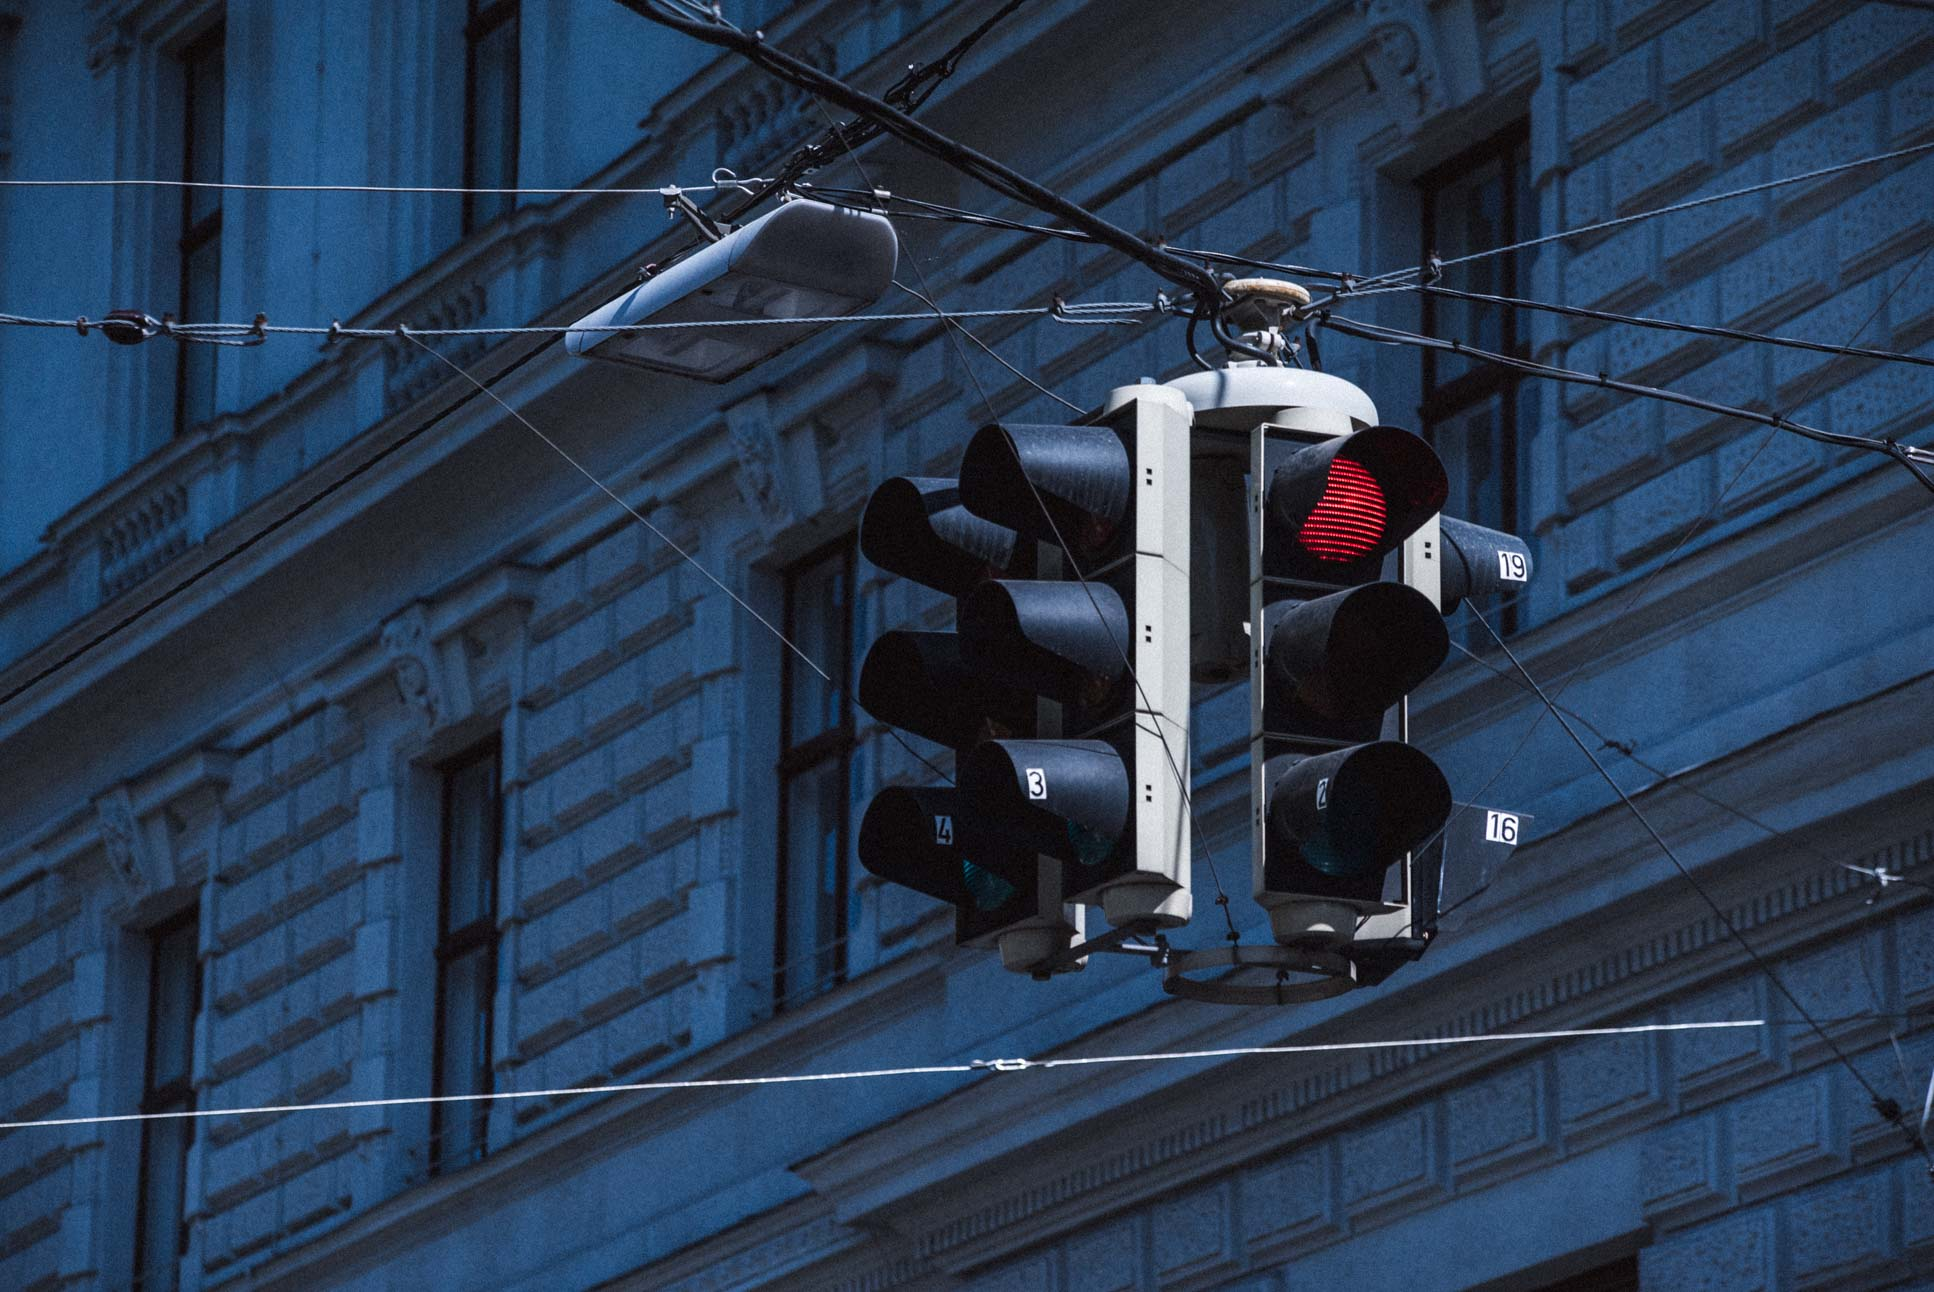 Photo by Pascal Sommer - Vienna traffic lights